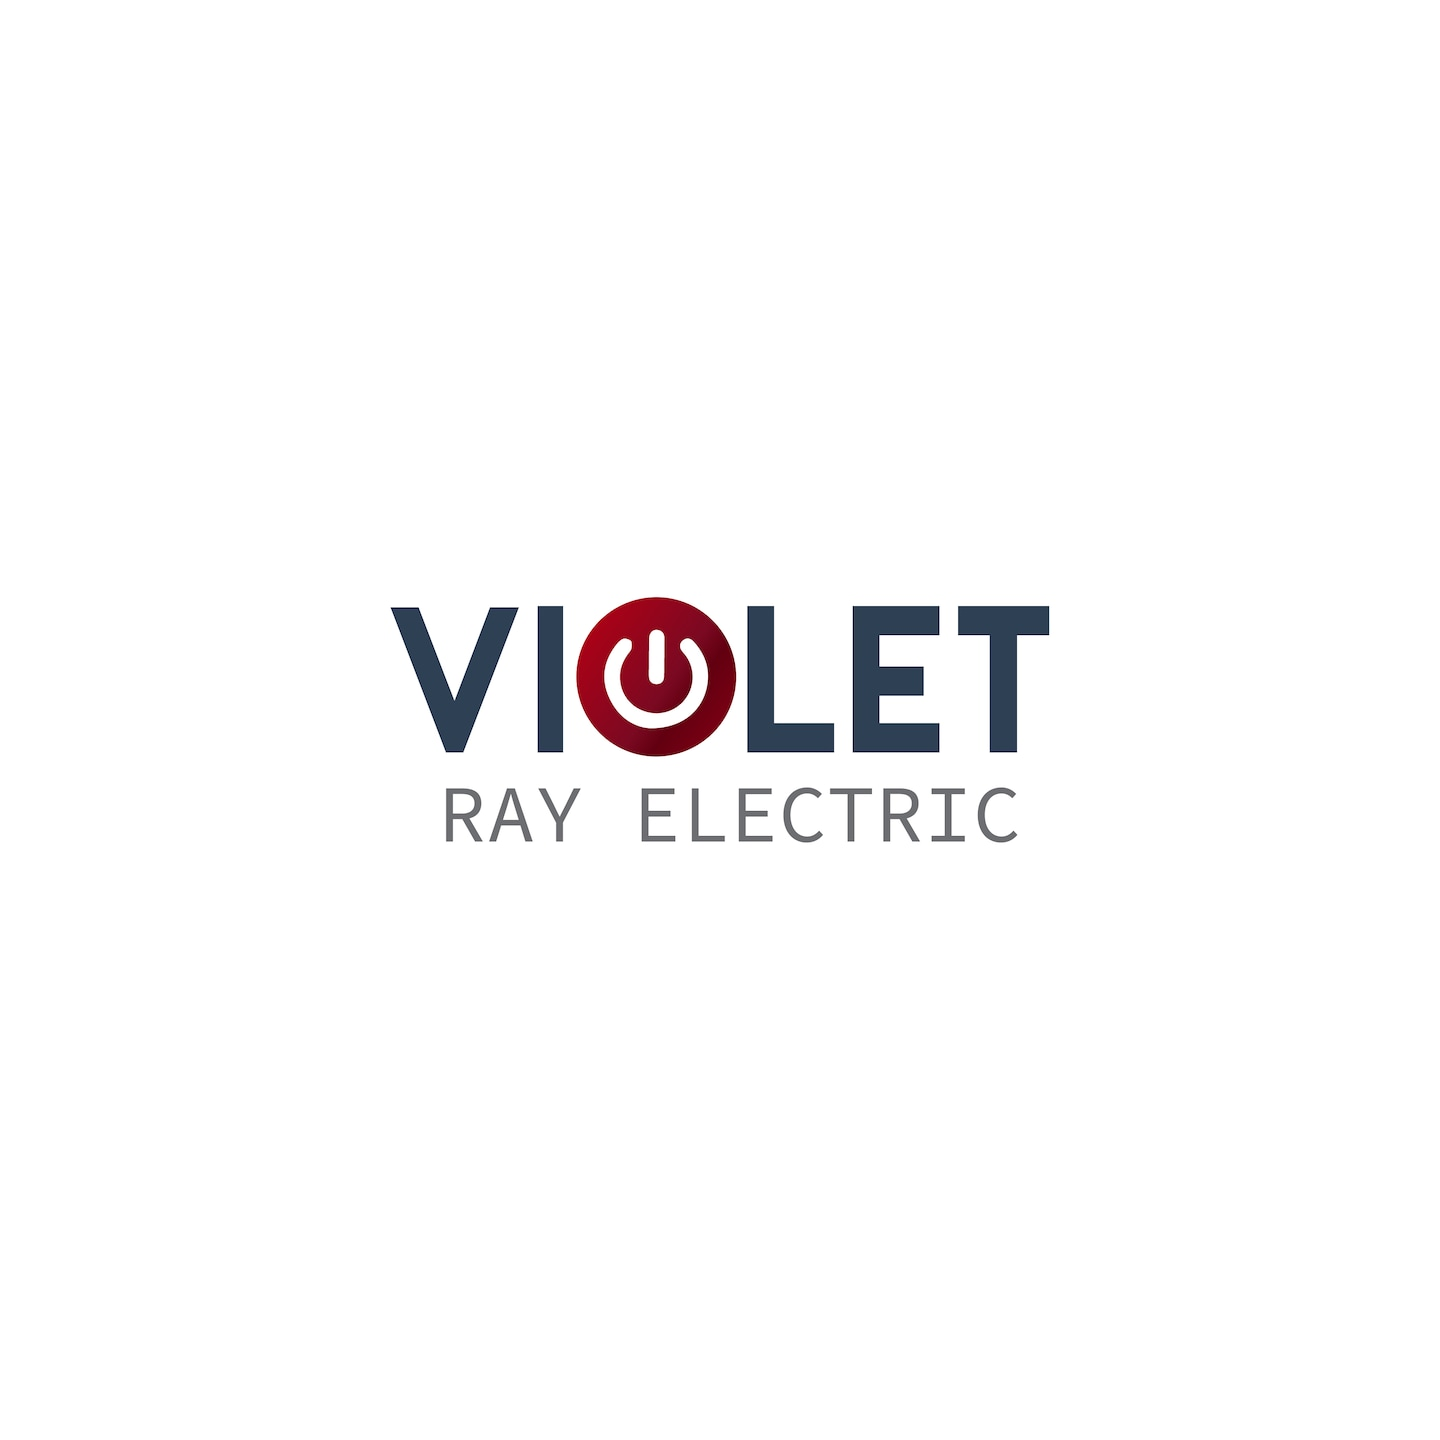 Violet Ray Electric